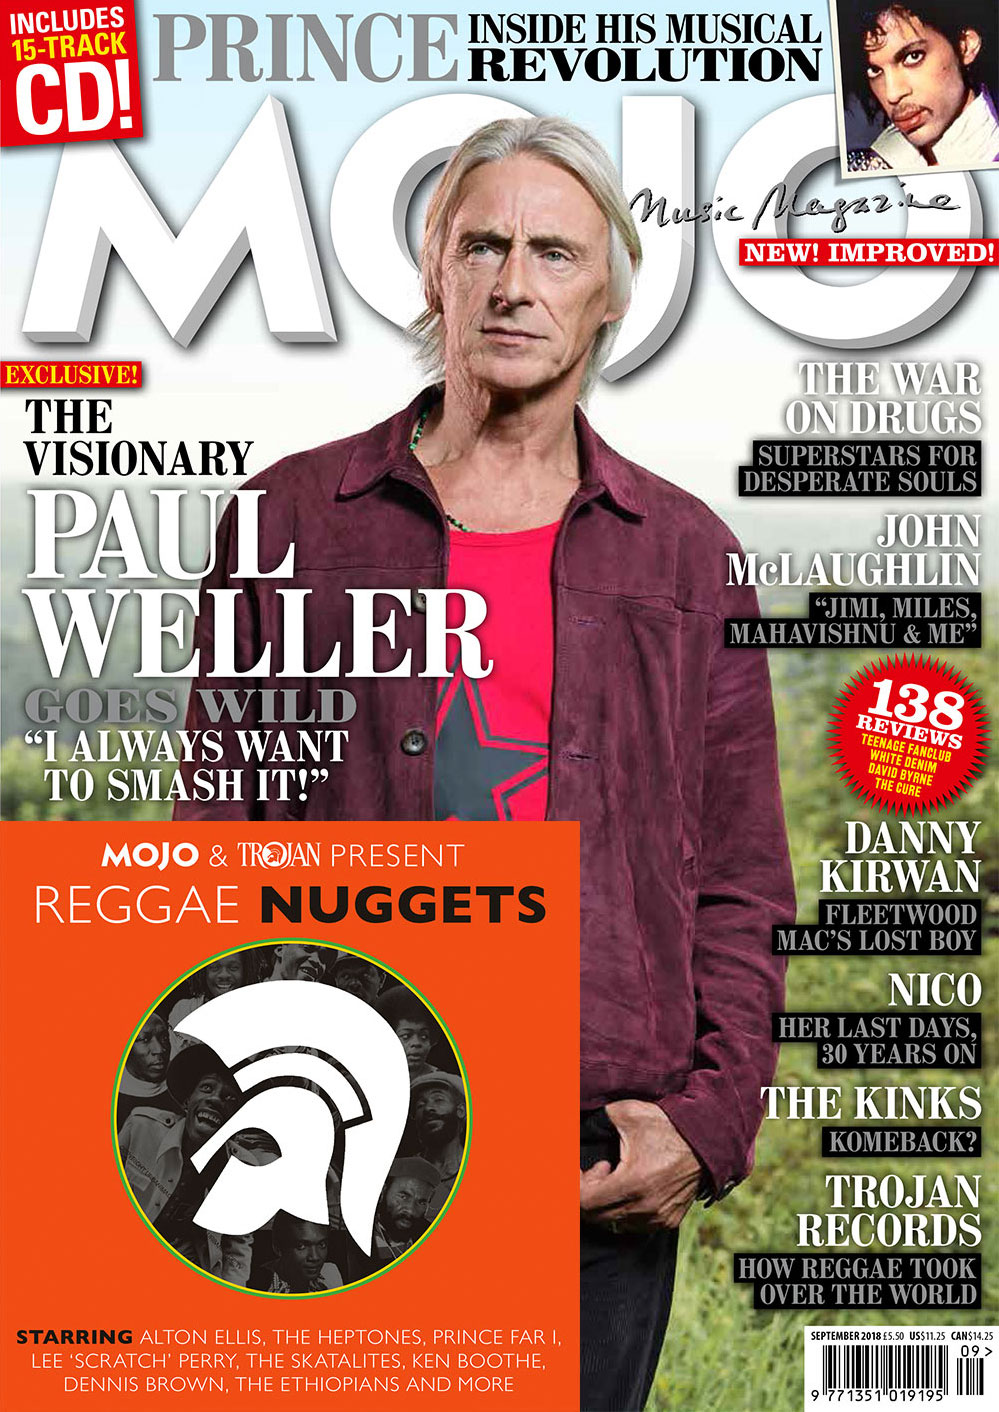 MOJO-288-cover-Paul-Weller-CD-small-1000.jpg